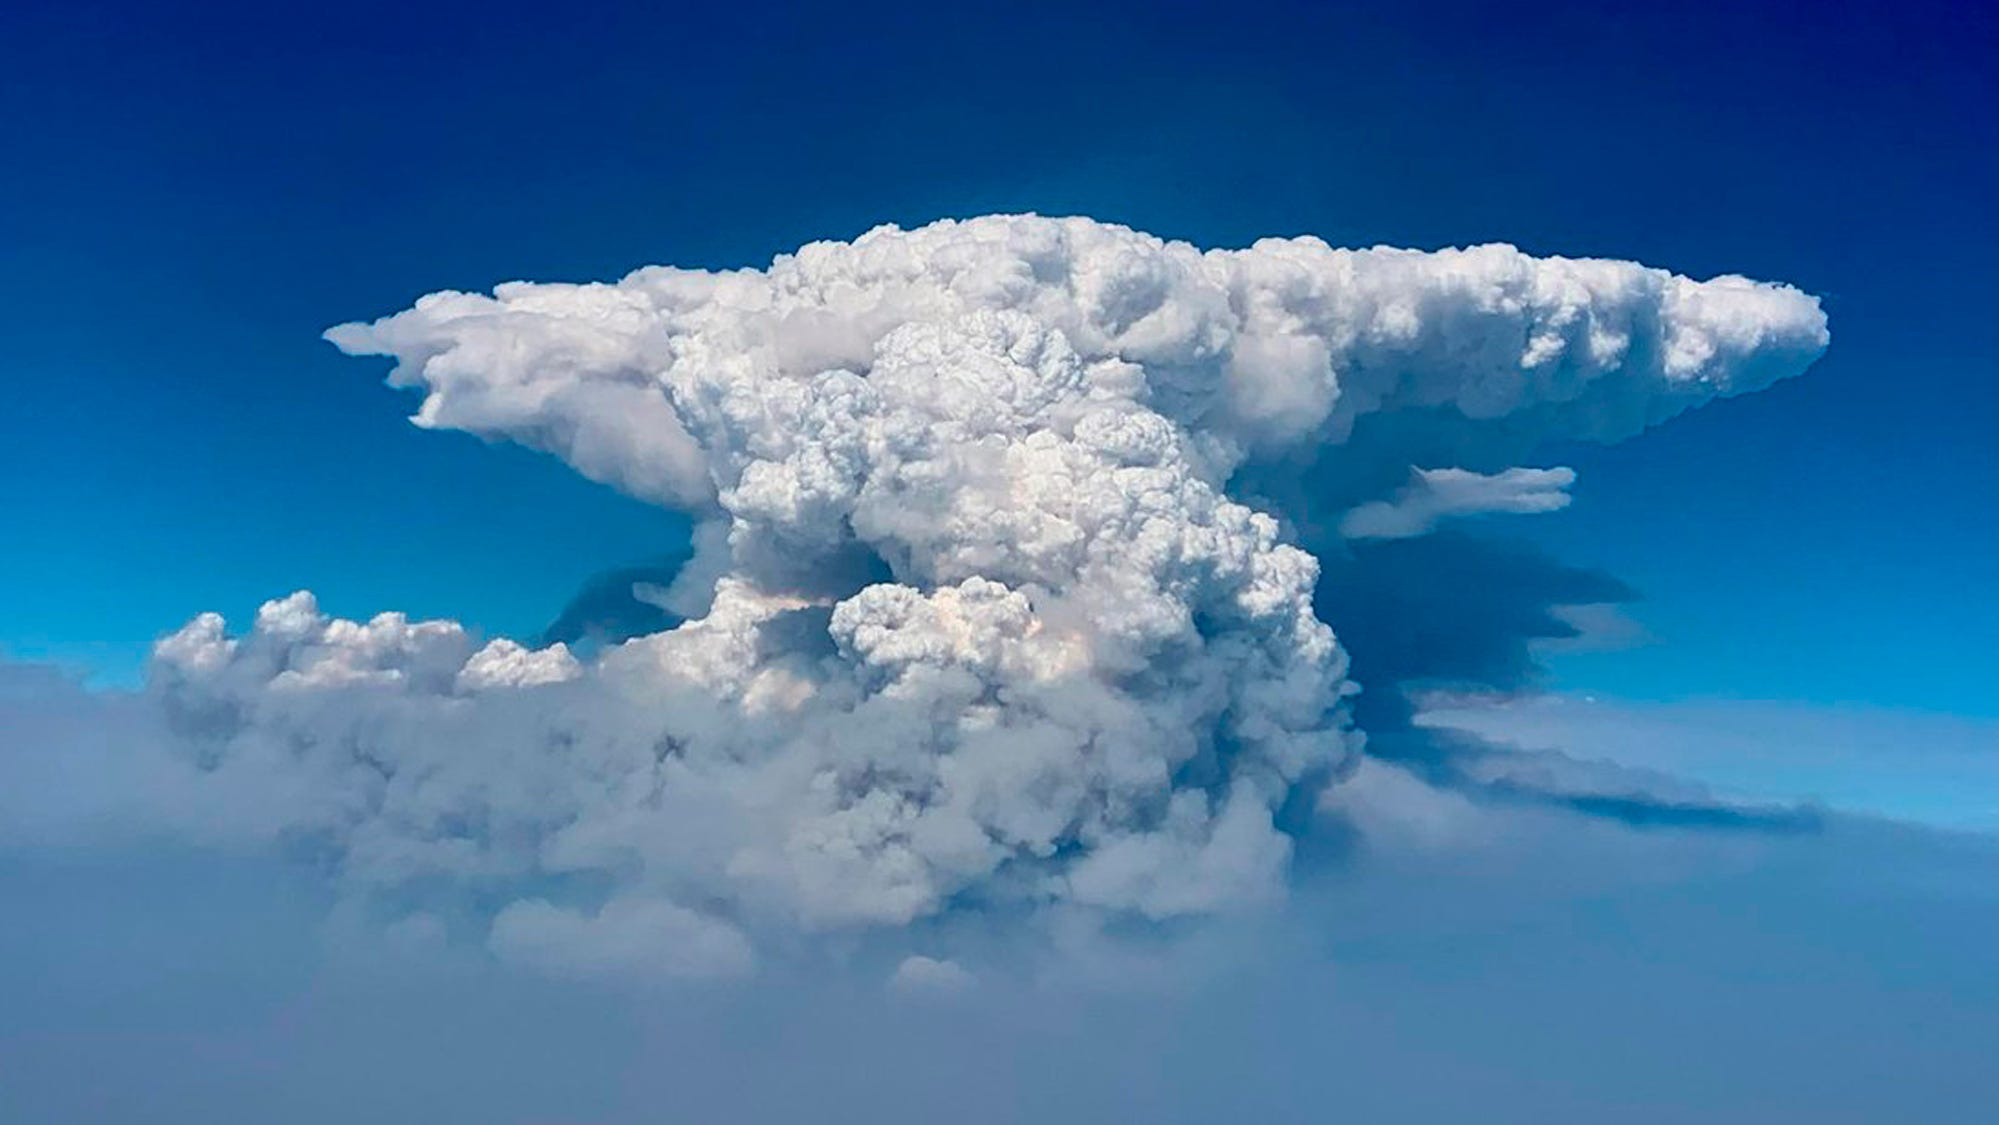 Wildfires in West could be exacerbated by 'fire clouds